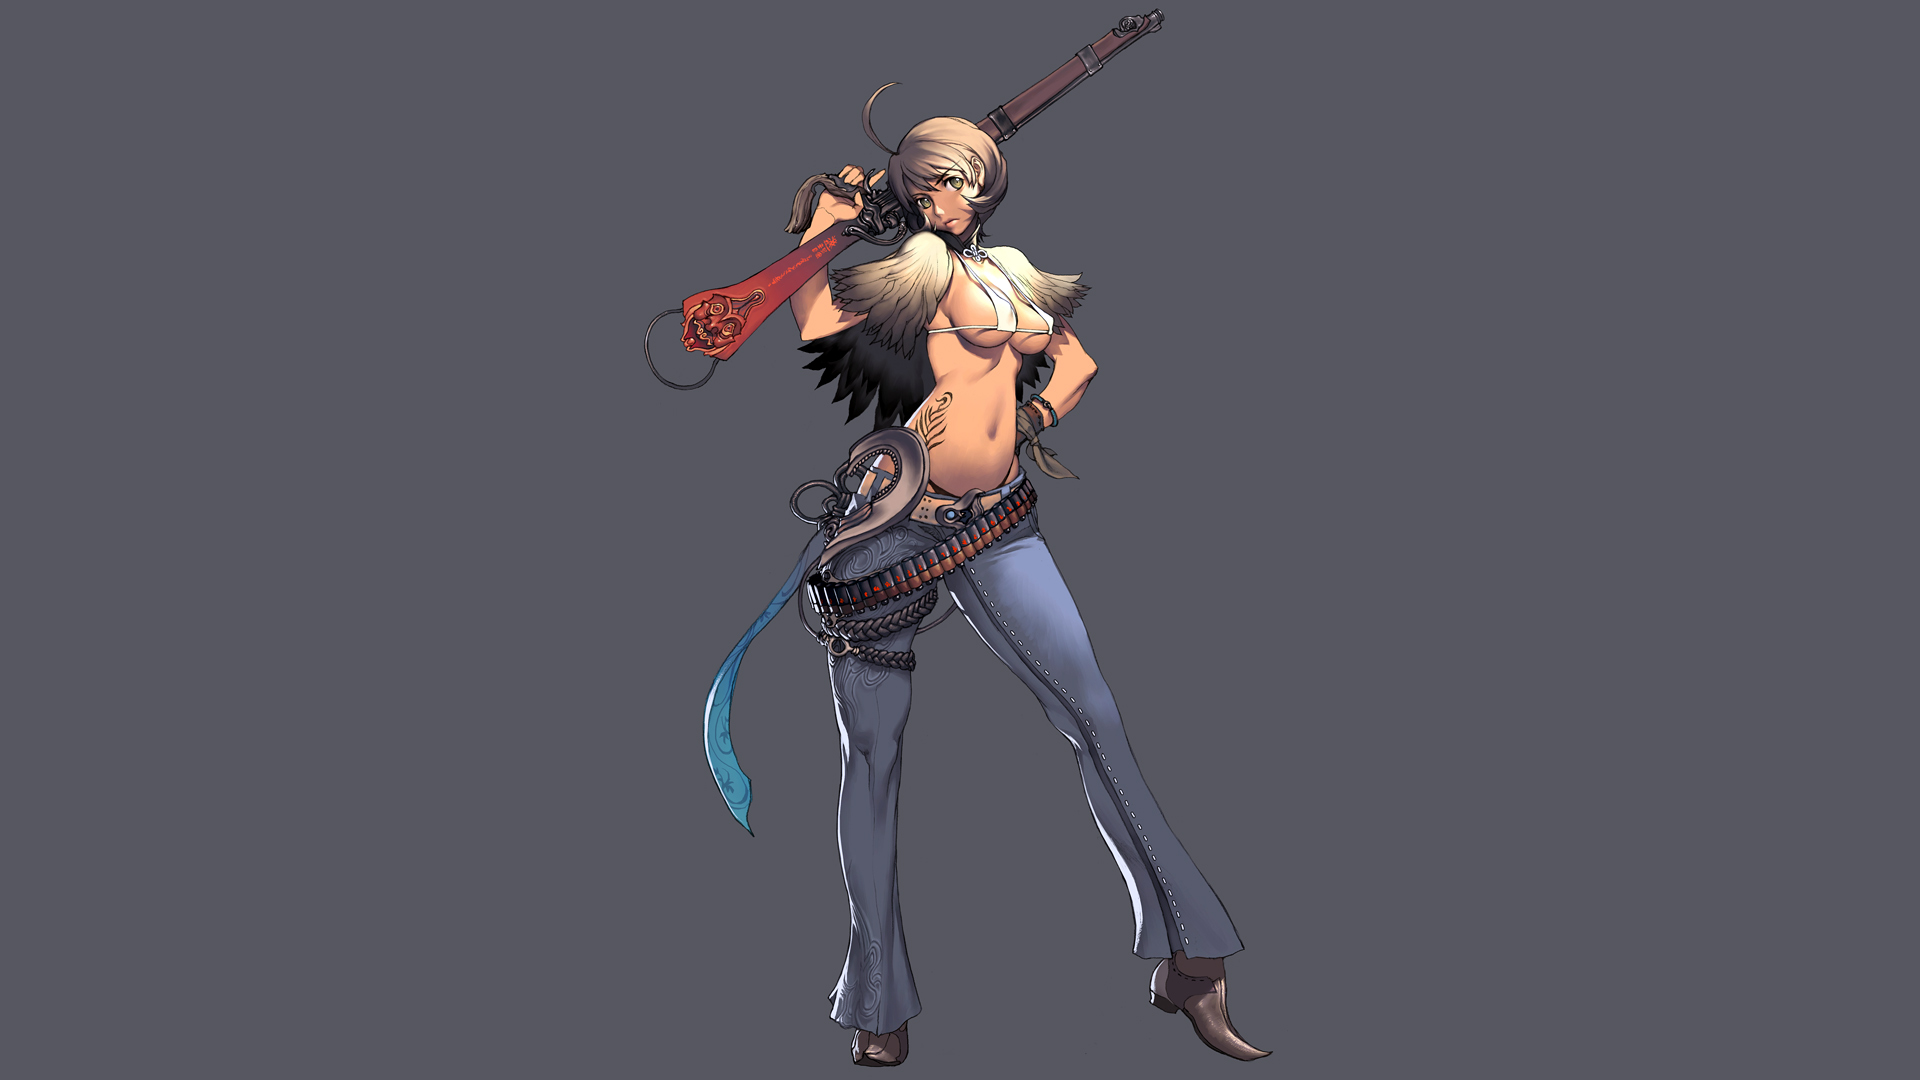 jin sexy blade and soul anime girls hd 1080p 1920x1080 wallpaper 1920x1080